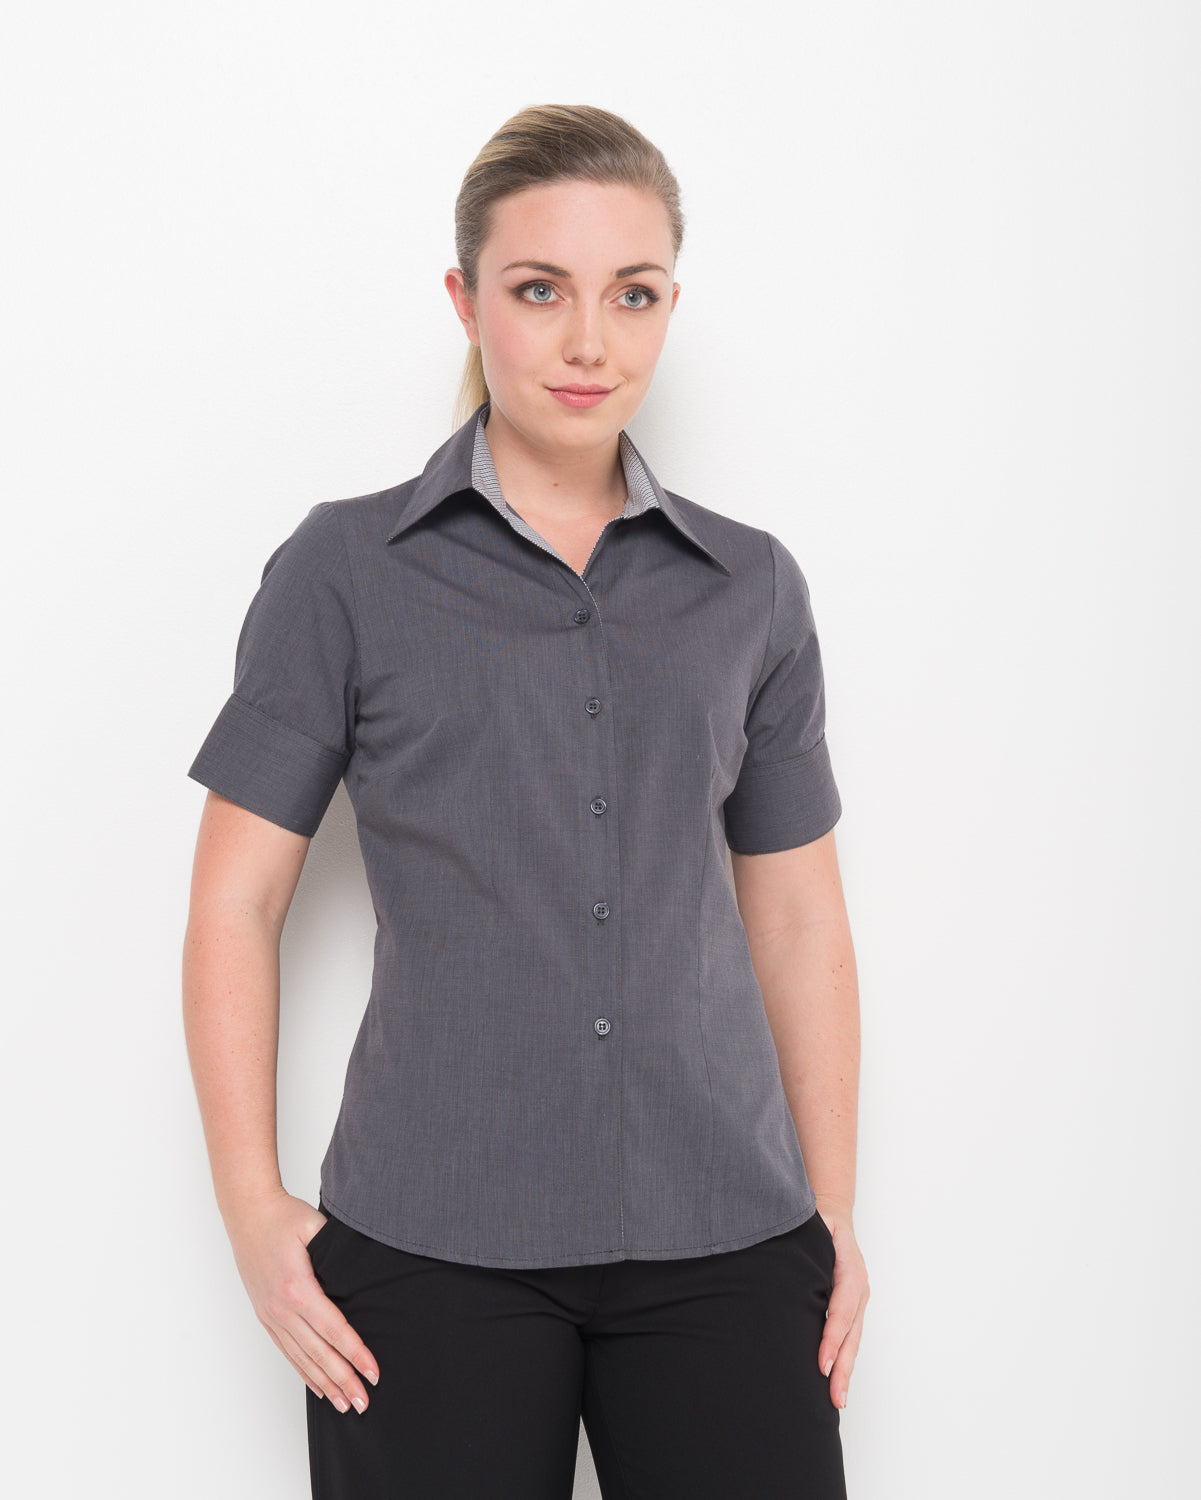 200-EE-CHA: 1/2 sleeve semi fitted shirt